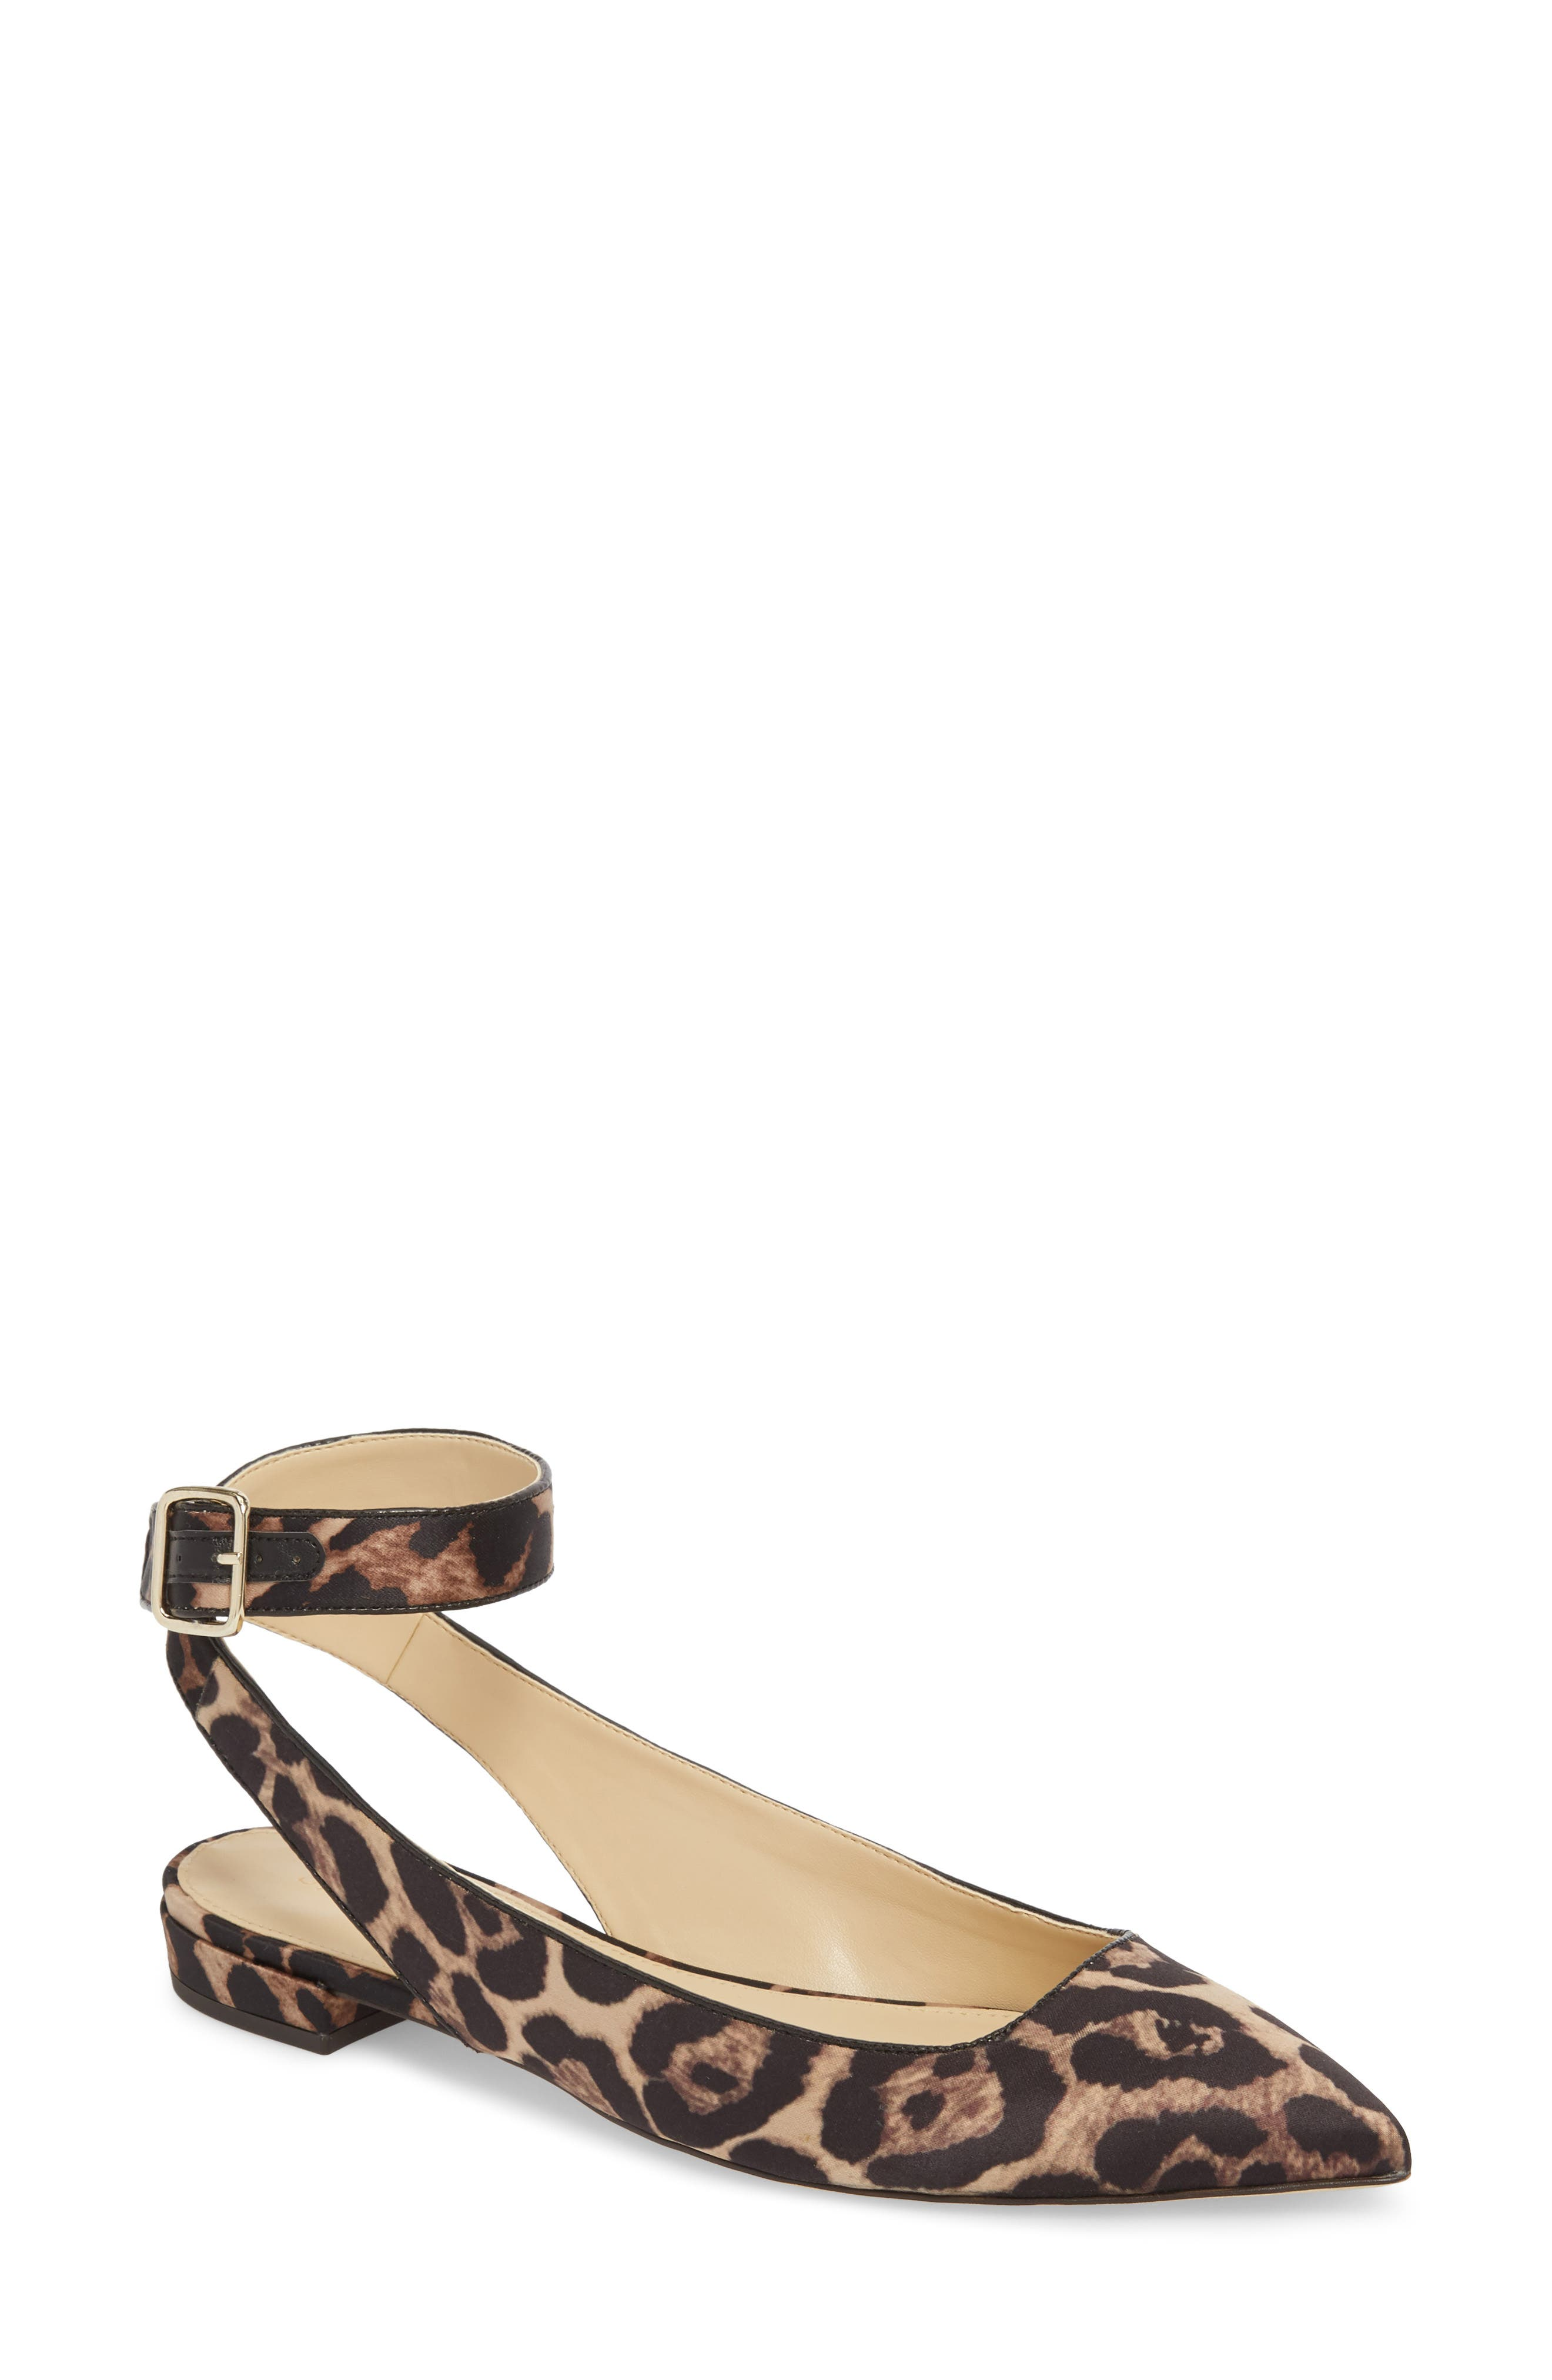 J. Crew Harlech Tabby Print Ankle Strap Flat,                             Main thumbnail 1, color,